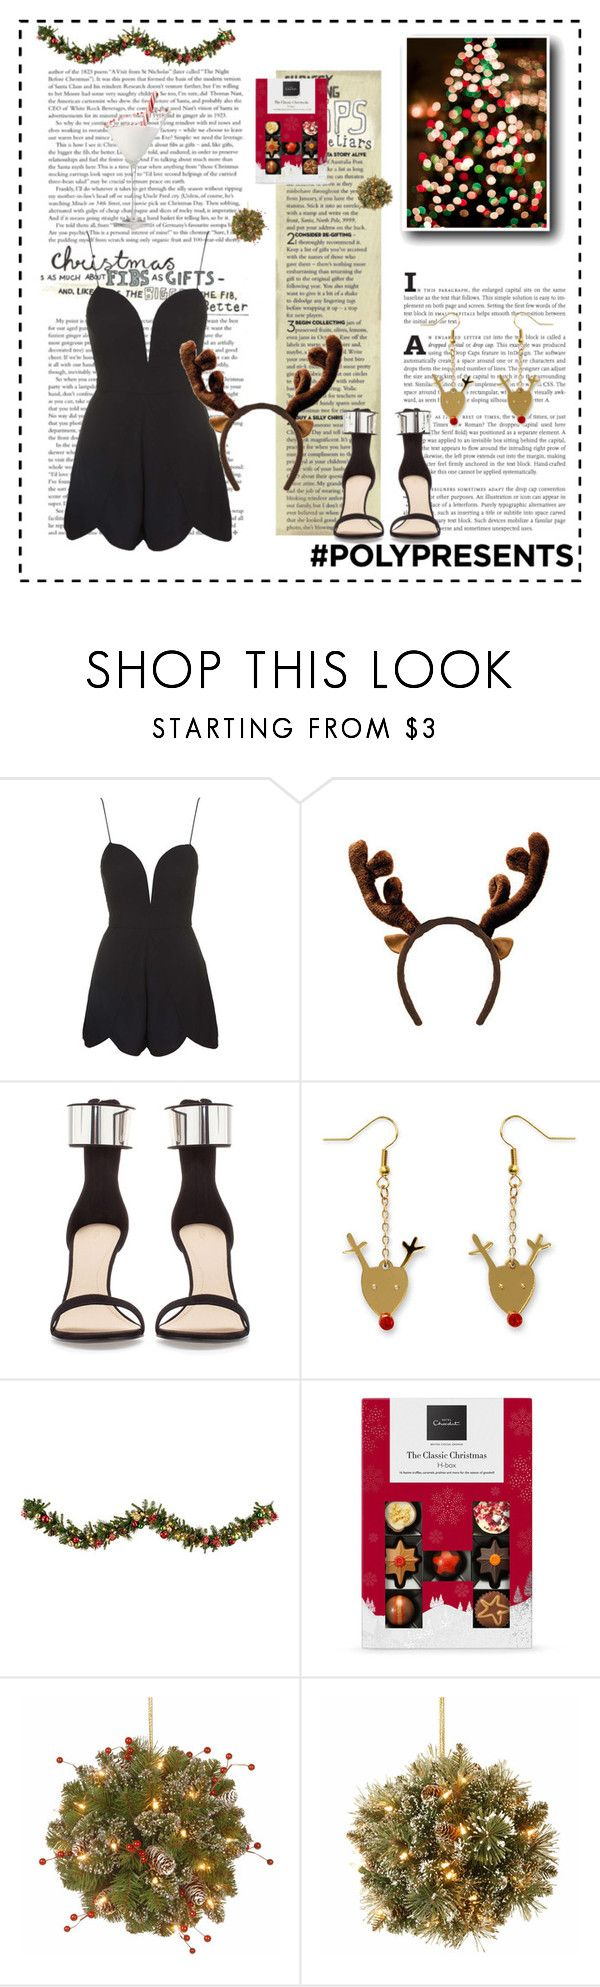 """""""Party dress♥.. #127"""" by rania-horan-stylinson-palik ❤ liked on Polyvore featuring Rare London, Zara, Improvements, National Tree Company, contestentry and polyPresents"""